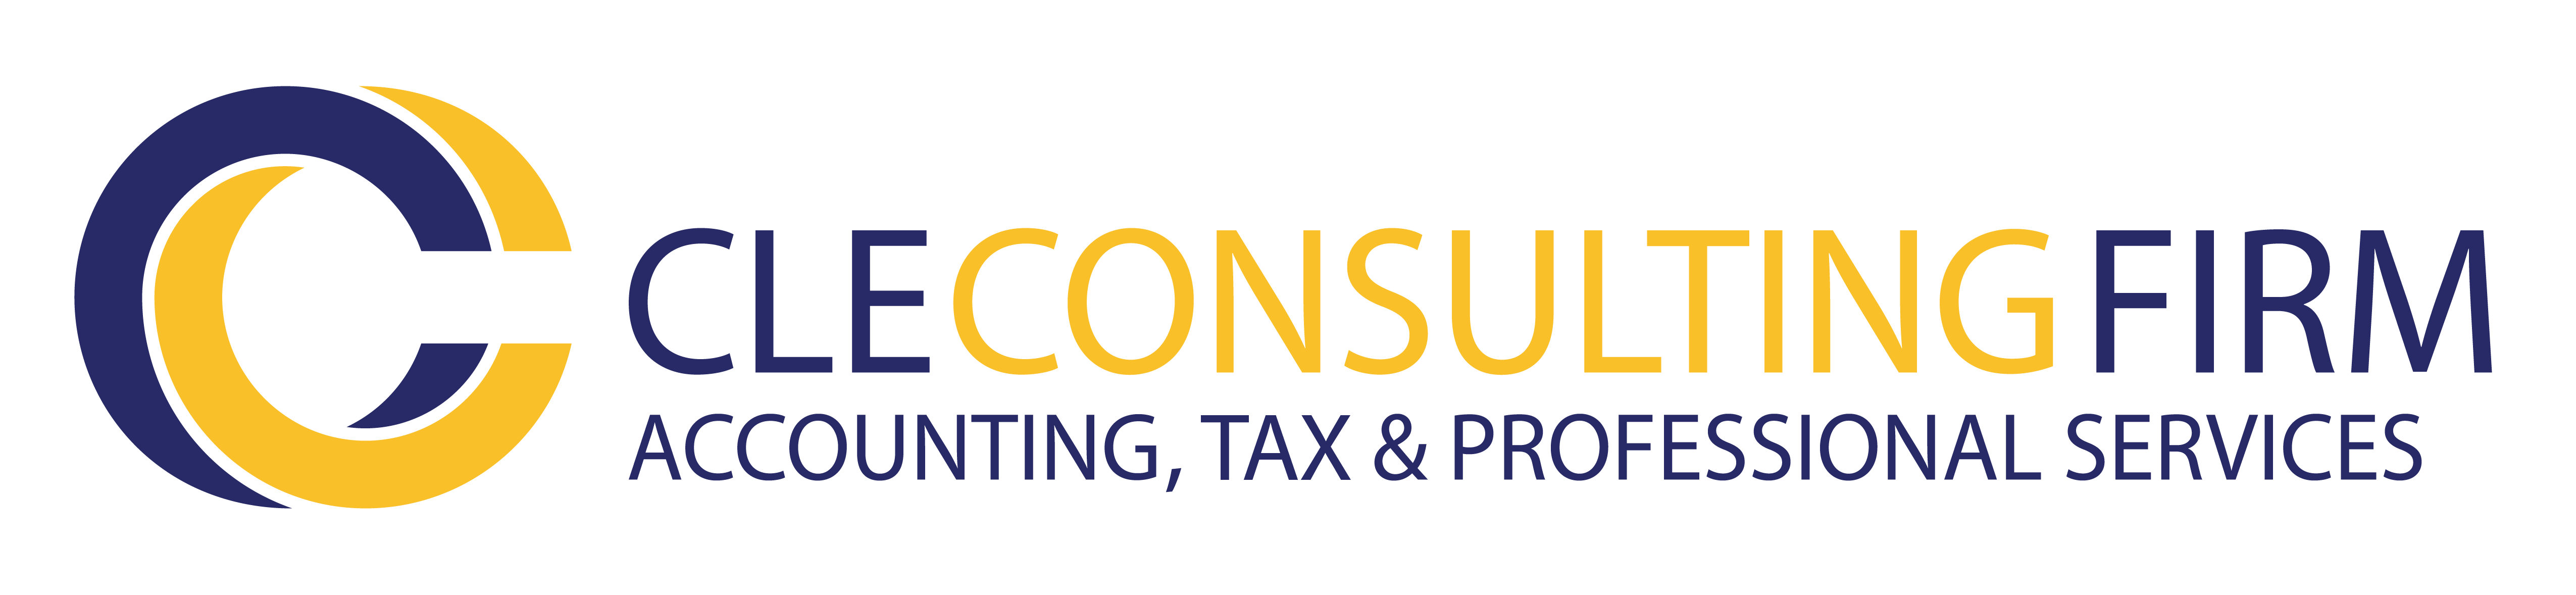 CLE Consulting Firm